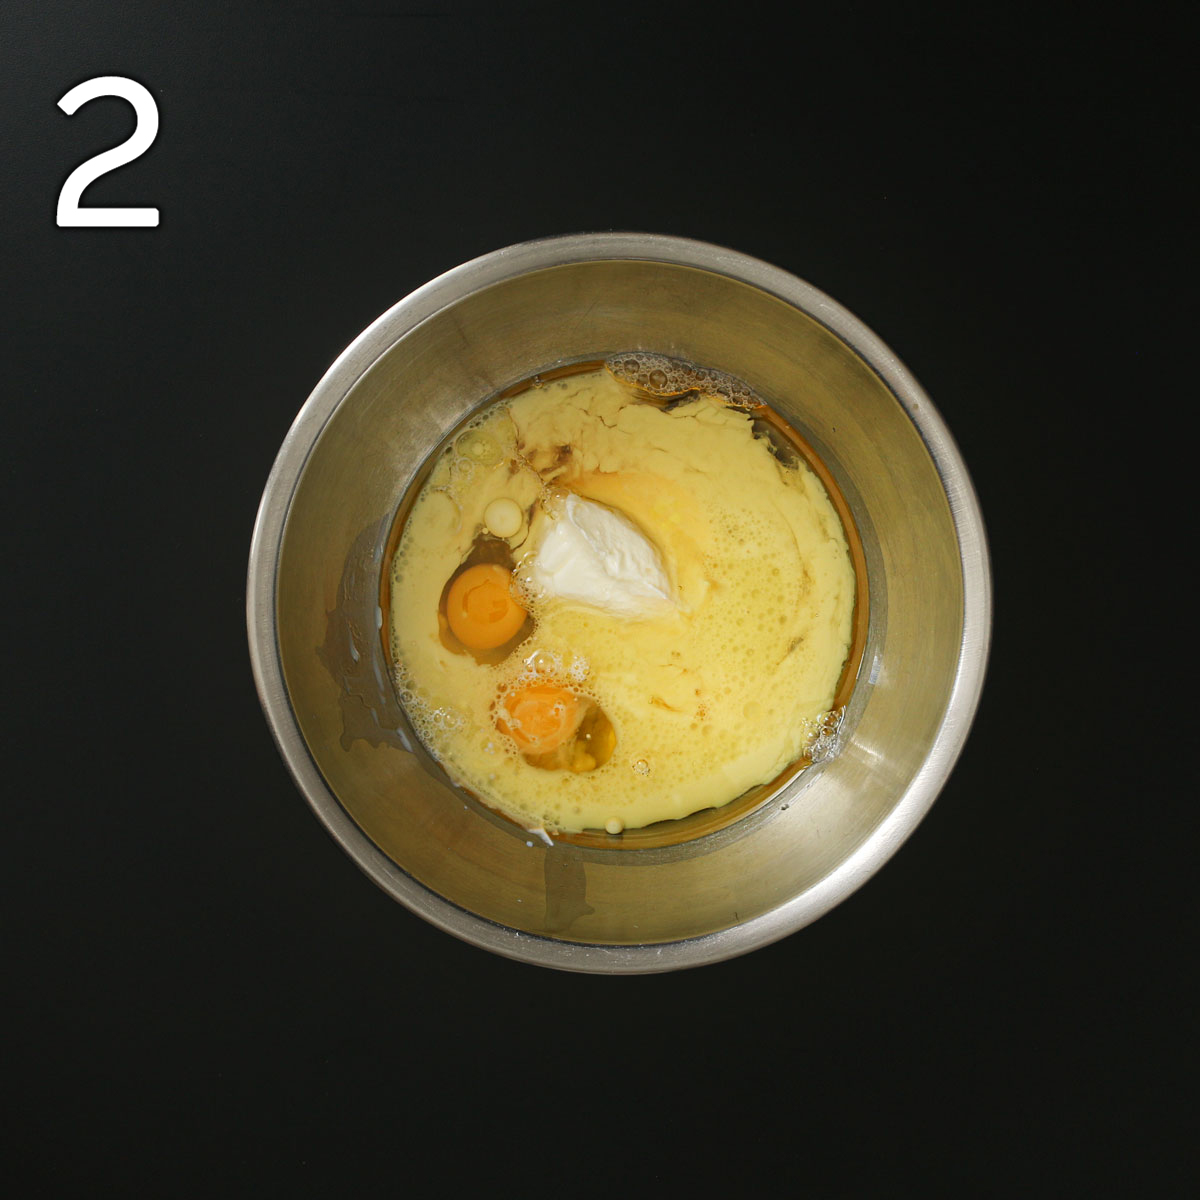 milk, juice, oil, yogurt, and eggs in another steel mixing bowl on black work surface.